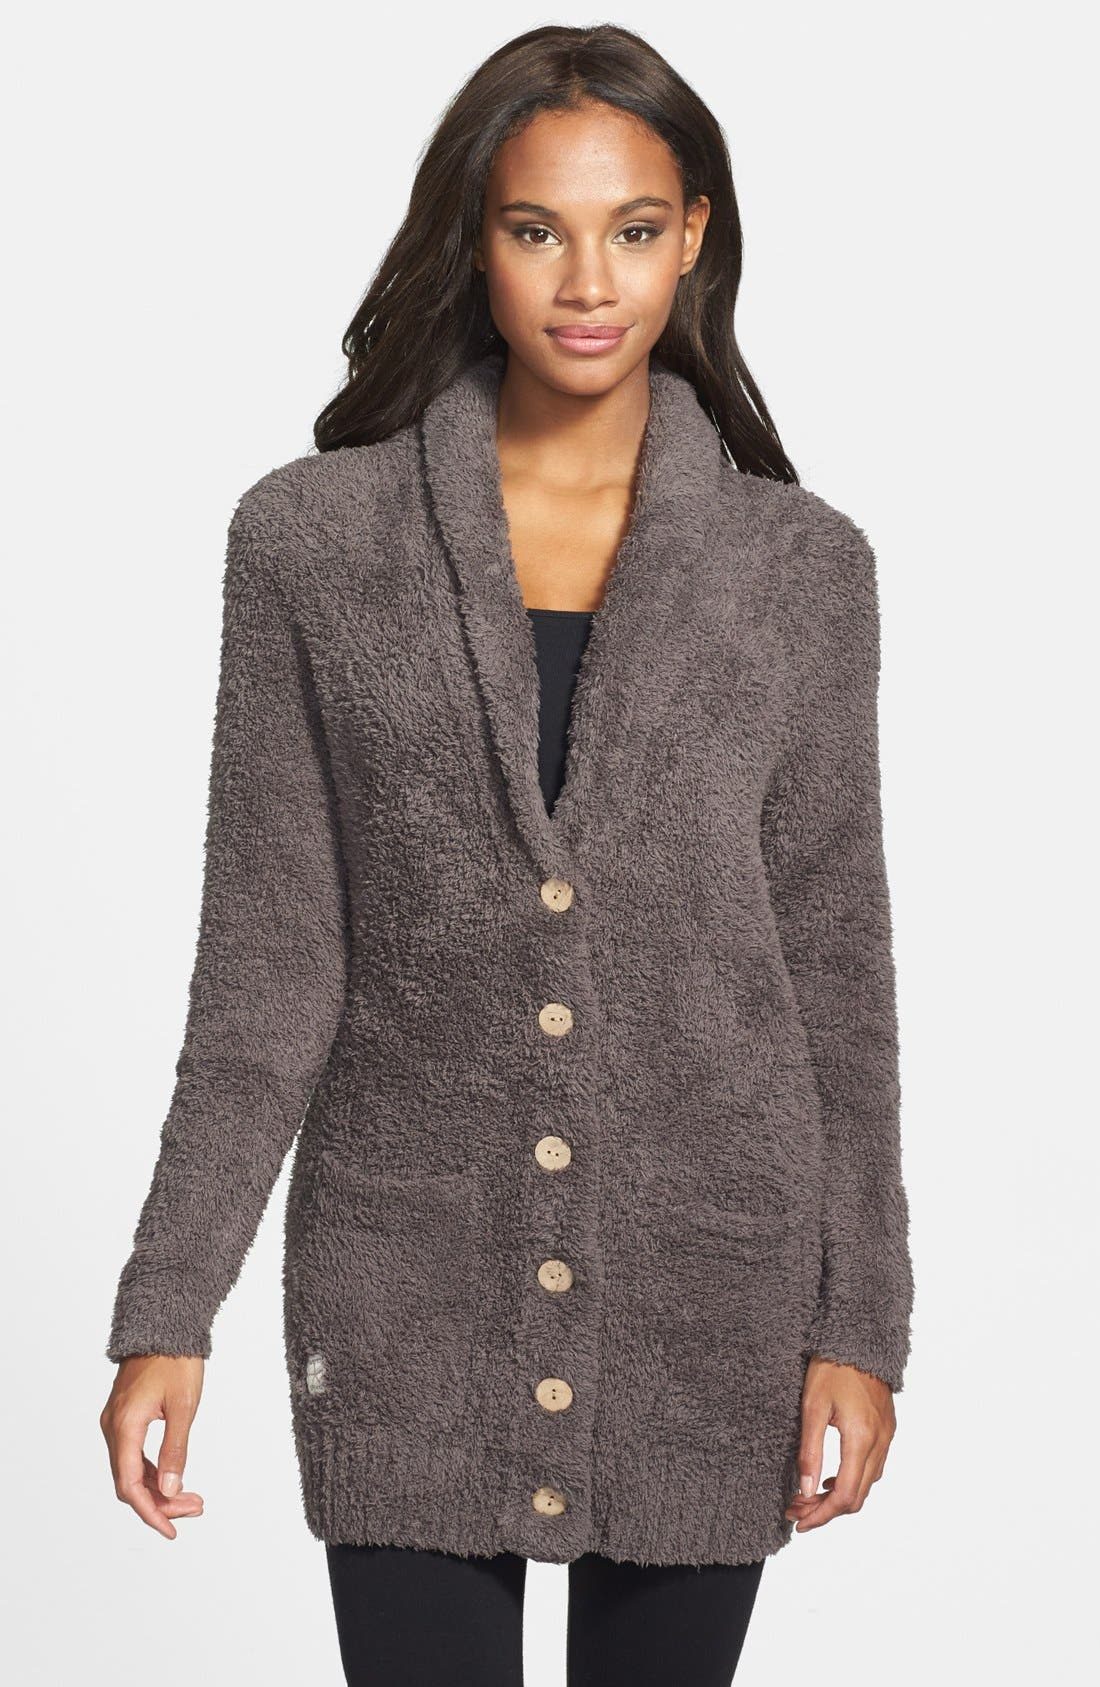 Main Image - Barefoot Dreams® Relaxed Fit CozyChic® Cardigan